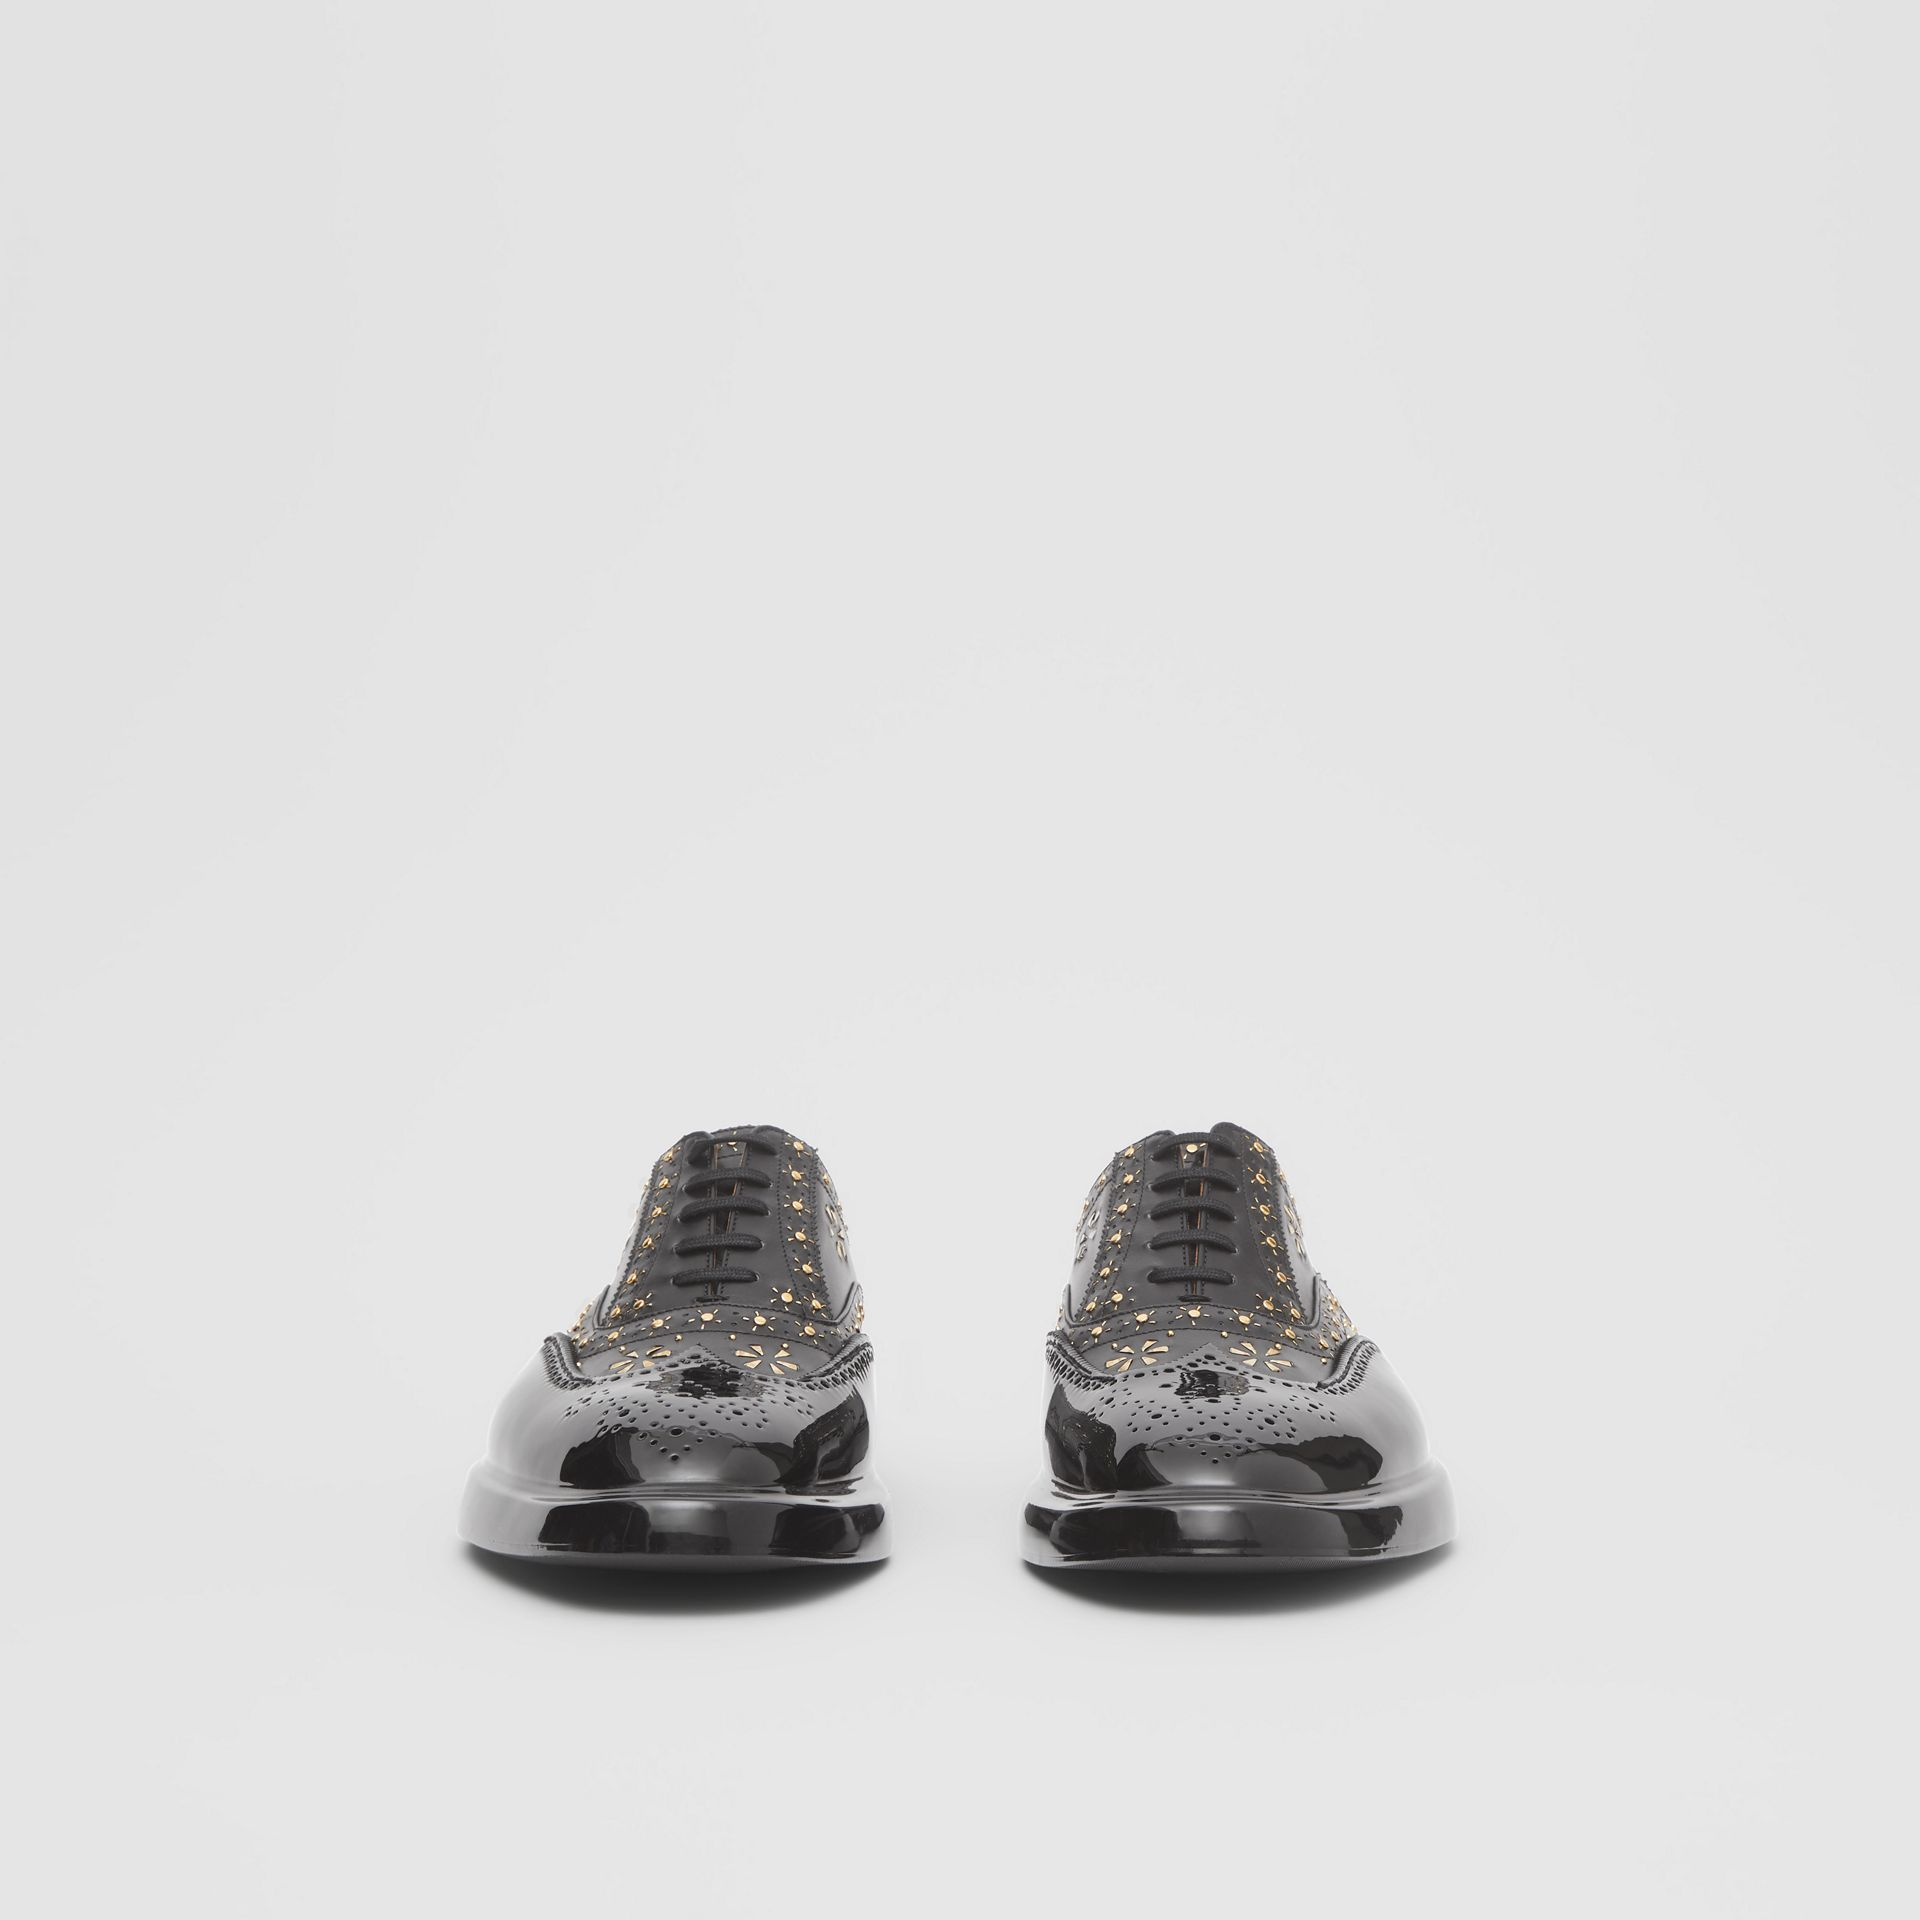 Toe Cap Detail Studded Leather Oxford Brogues in Black | Burberry Hong Kong S.A.R - gallery image 3